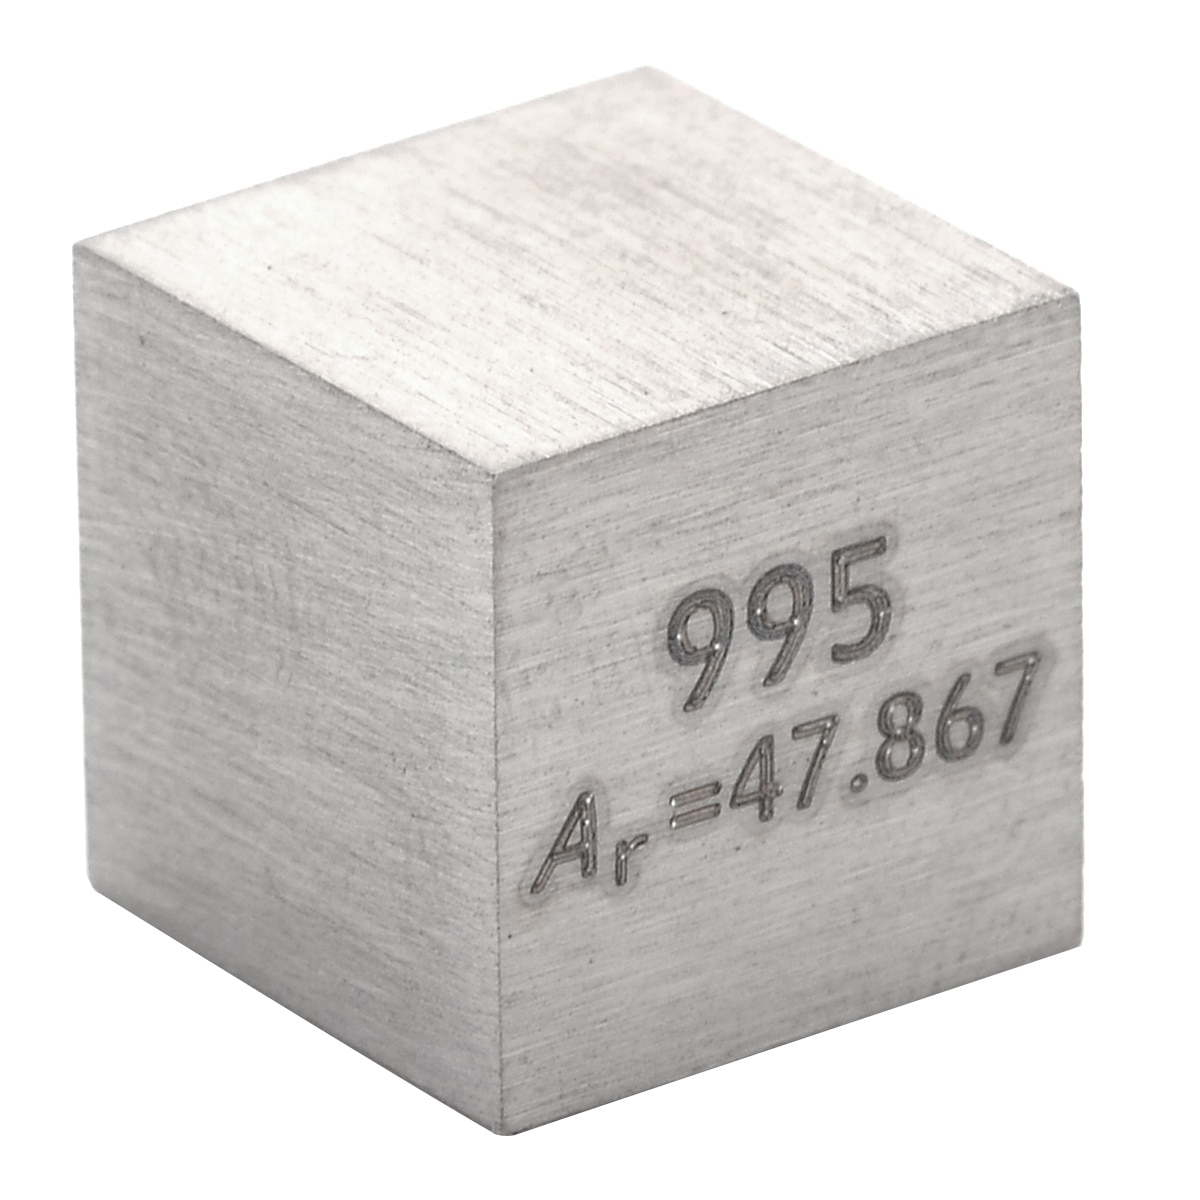 1Pcs 99.5% High Purity Metal Ti Block Pure Titanium Cube 10mm Carved Element Periodic Table Collection For Class Teaching Tools недорого